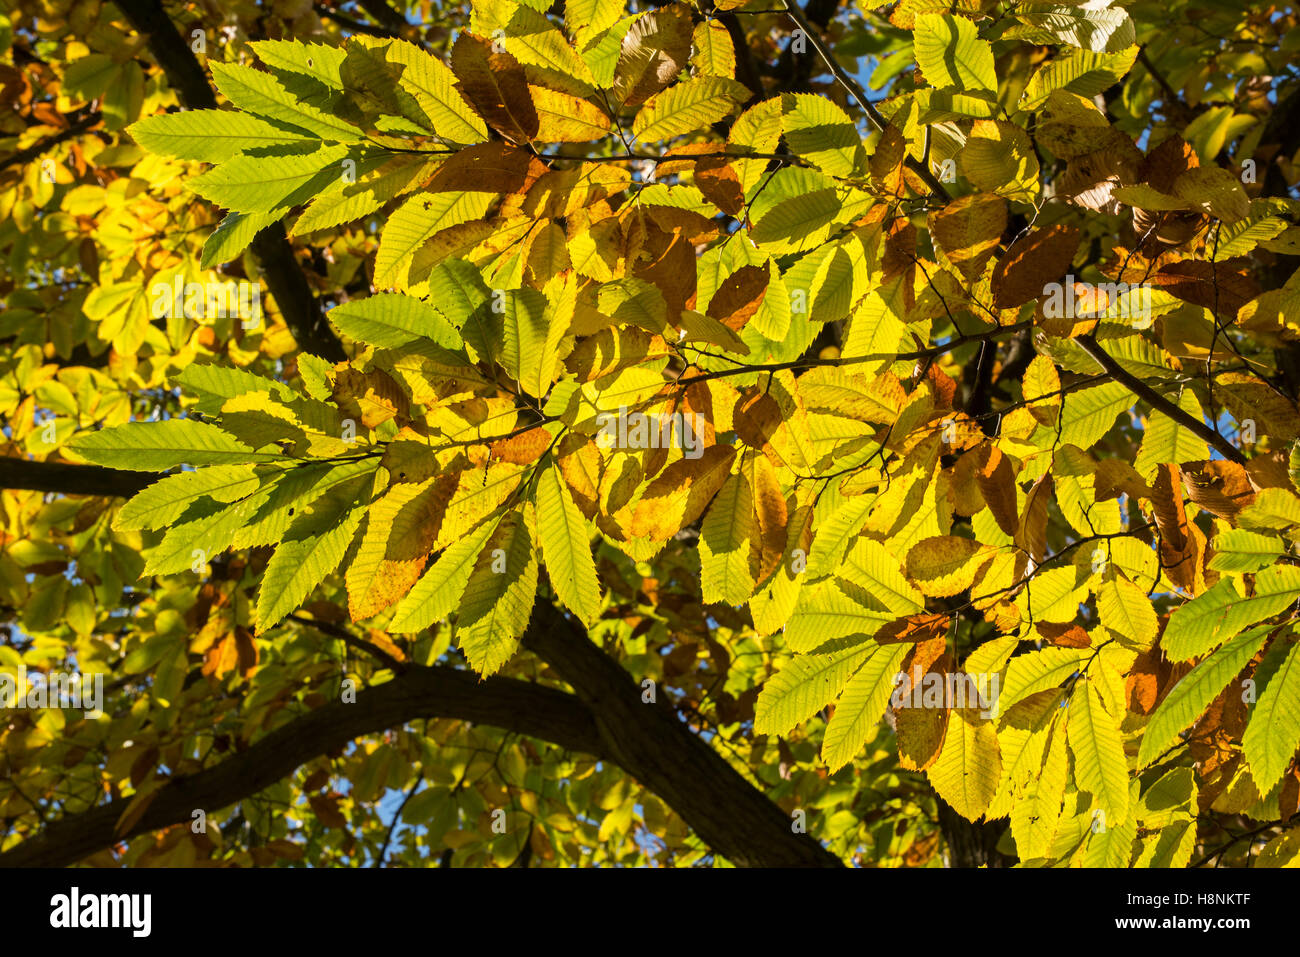 Dense foliage of sweet chestnut (Castanea sativa) tree showing leaves in autumn colours Stock Photo